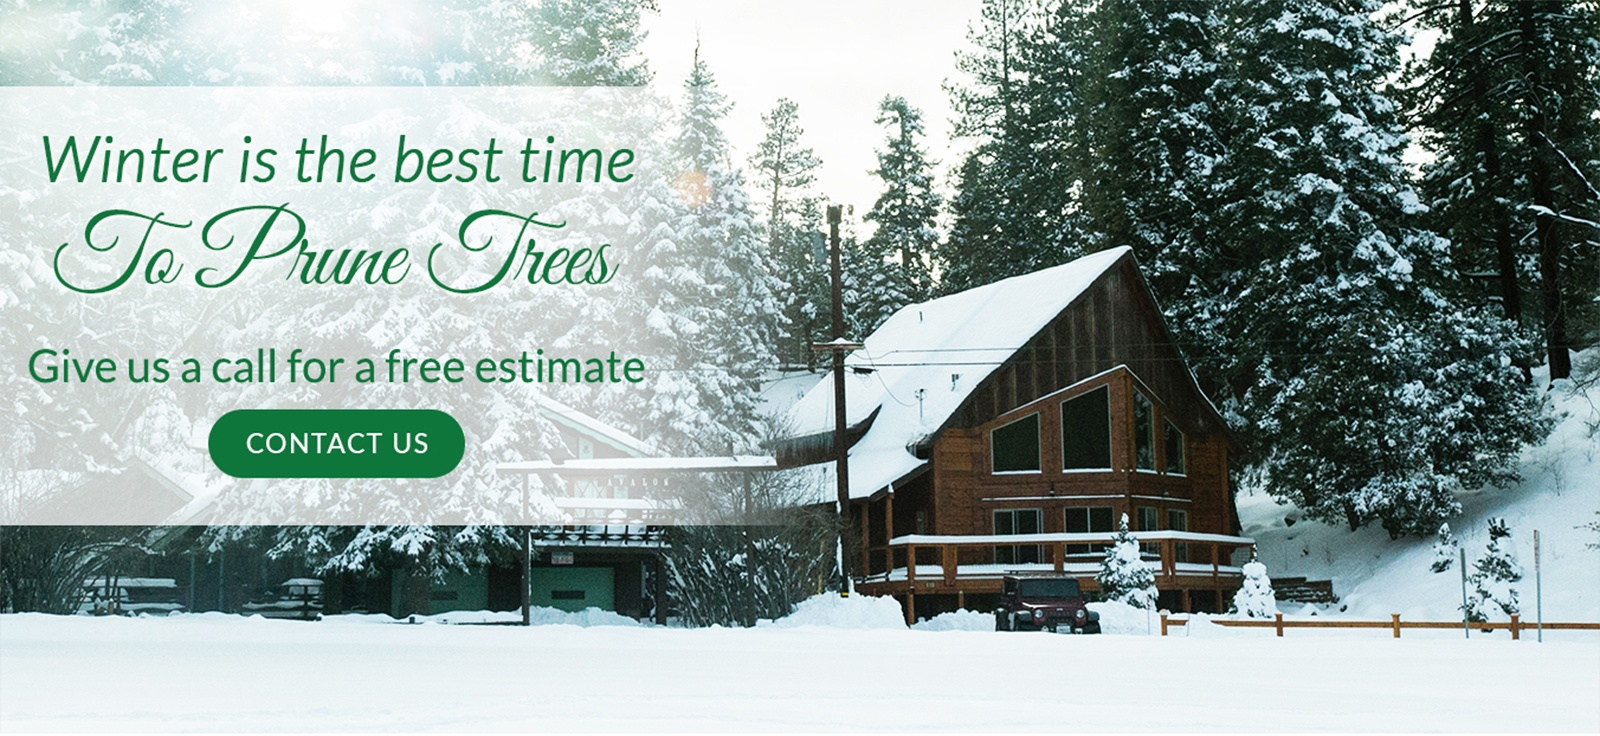 Winter is the Best Time to Prune Trees - Tree Pruning Services in Calgary by Ornamental Landscape Maintainers Ltd.